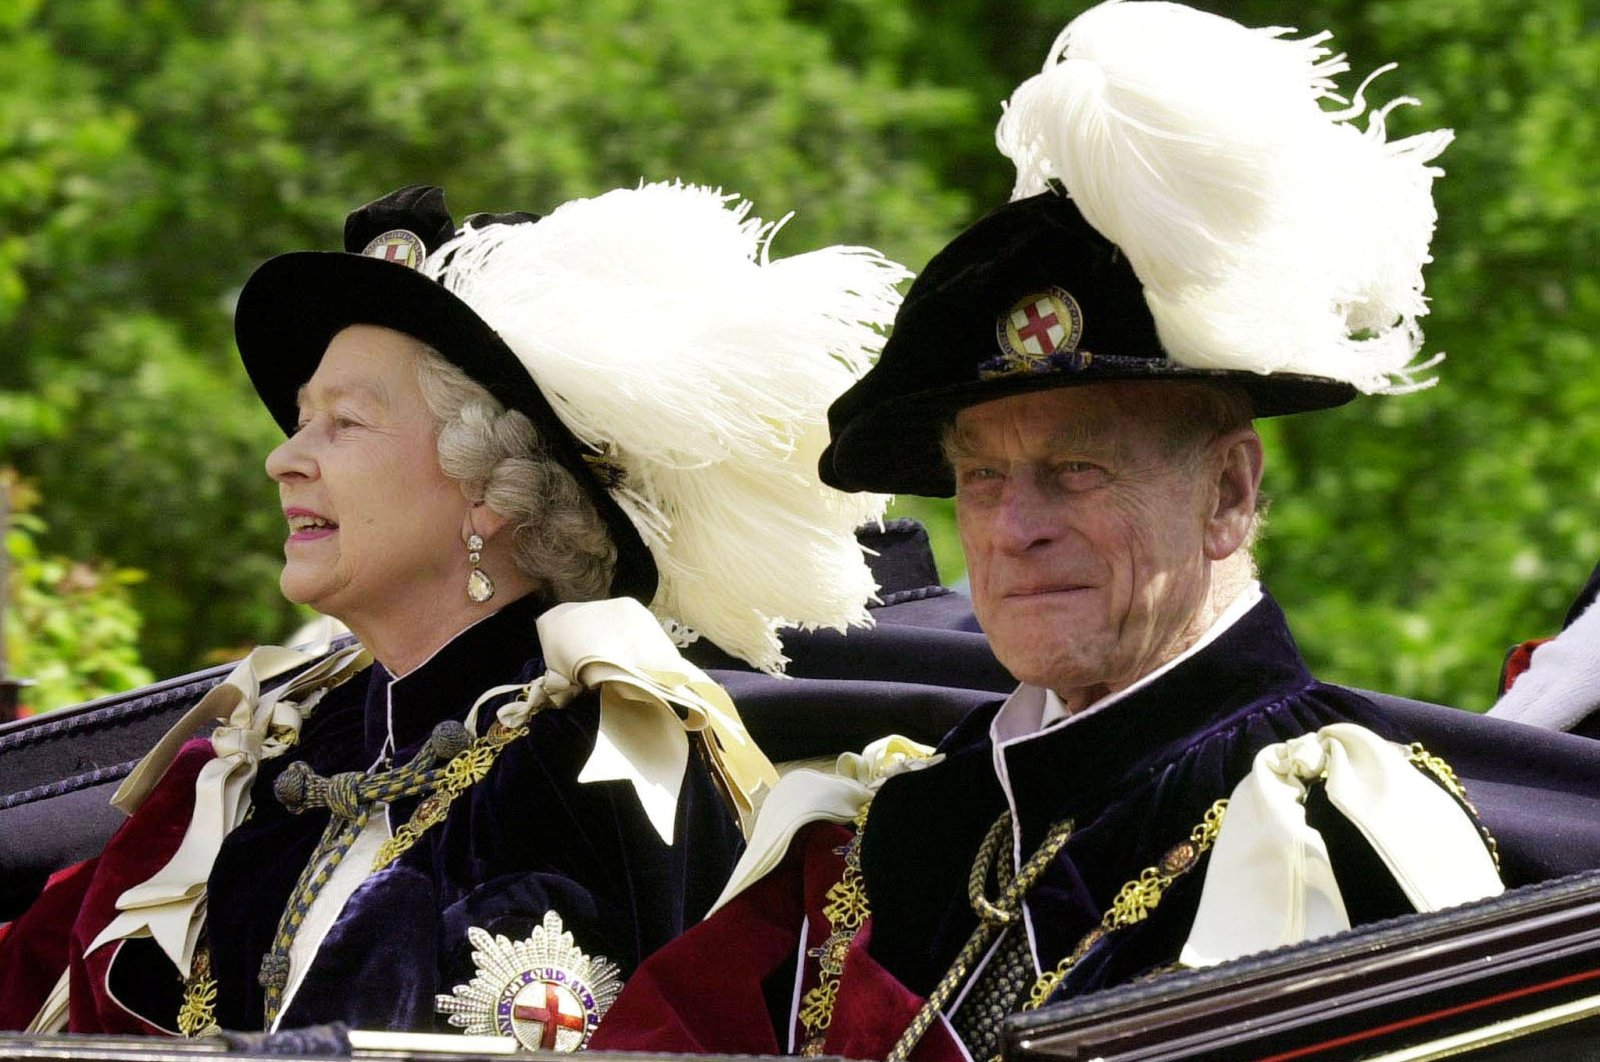 Britain's Queen Elizabeth II (L) and Prince Phillip, the Duke of Edinburgh, wearing their Order of the Garter robes, ride in an open-topped carriage to Windsor Castle following the Garter Ceremony, Windsor, U.K., June 18, 2001. (Reuters Photo)